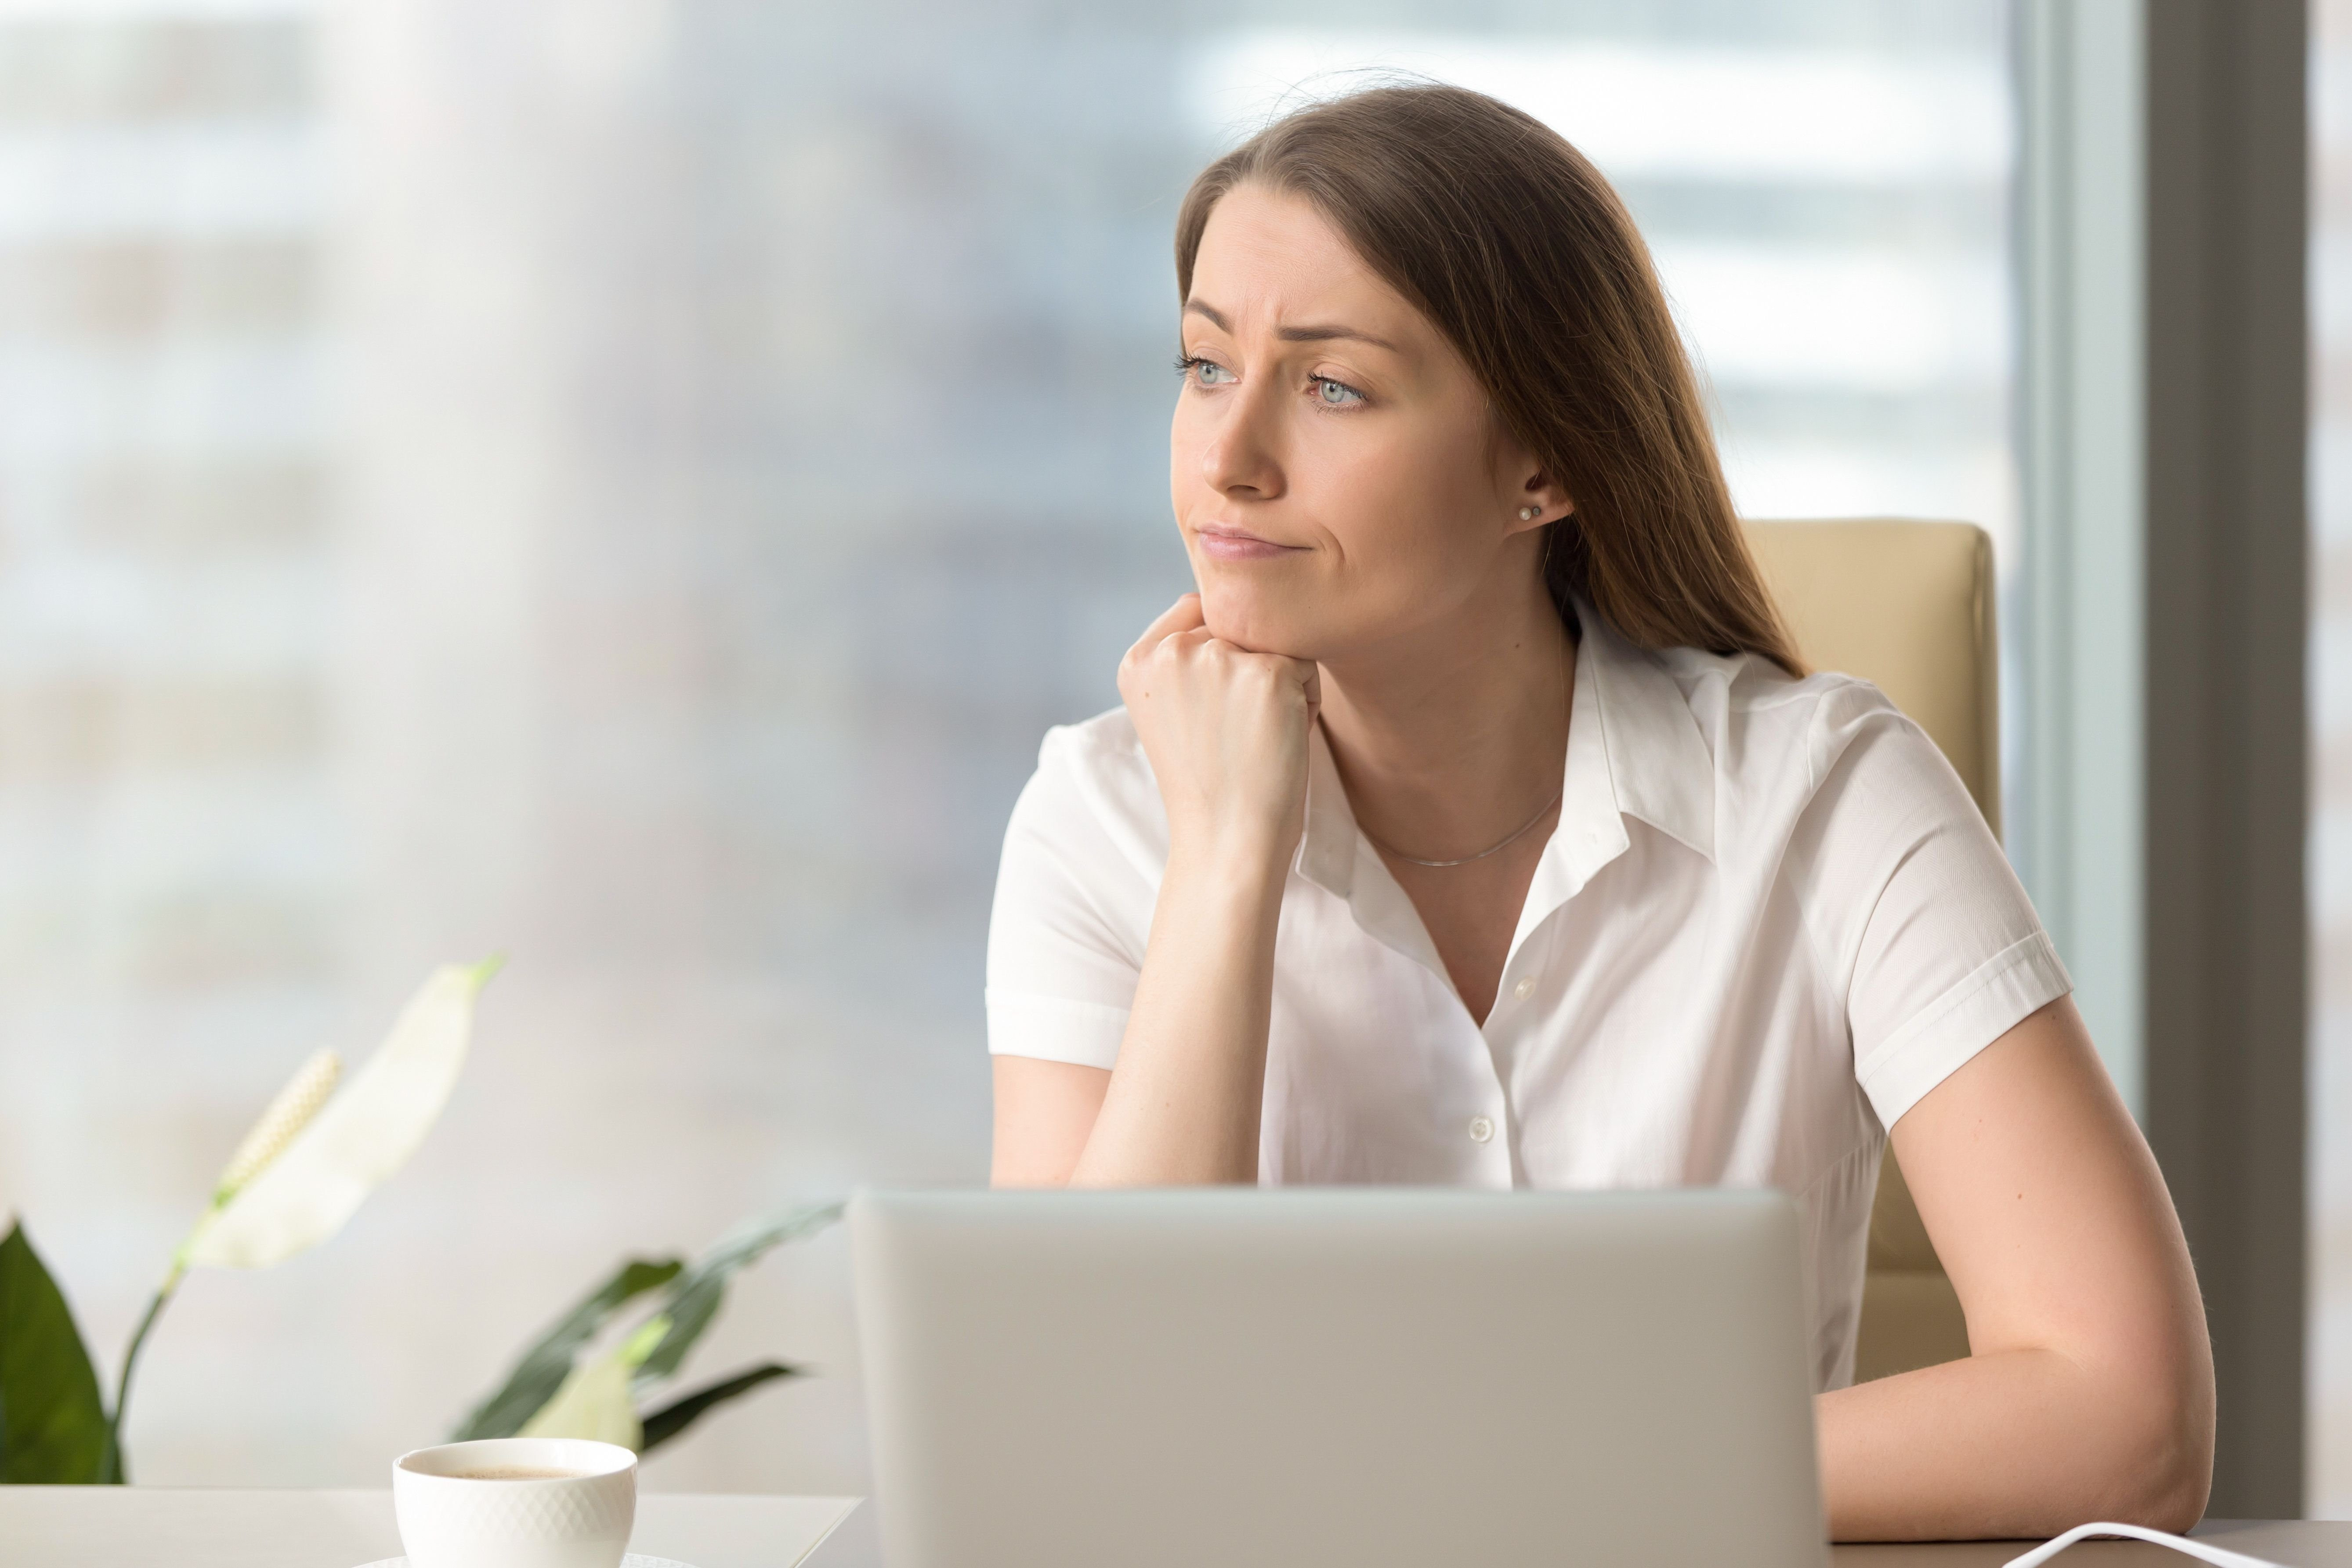 A woman using her laptop while looking out the window. | Source: Shutterstock